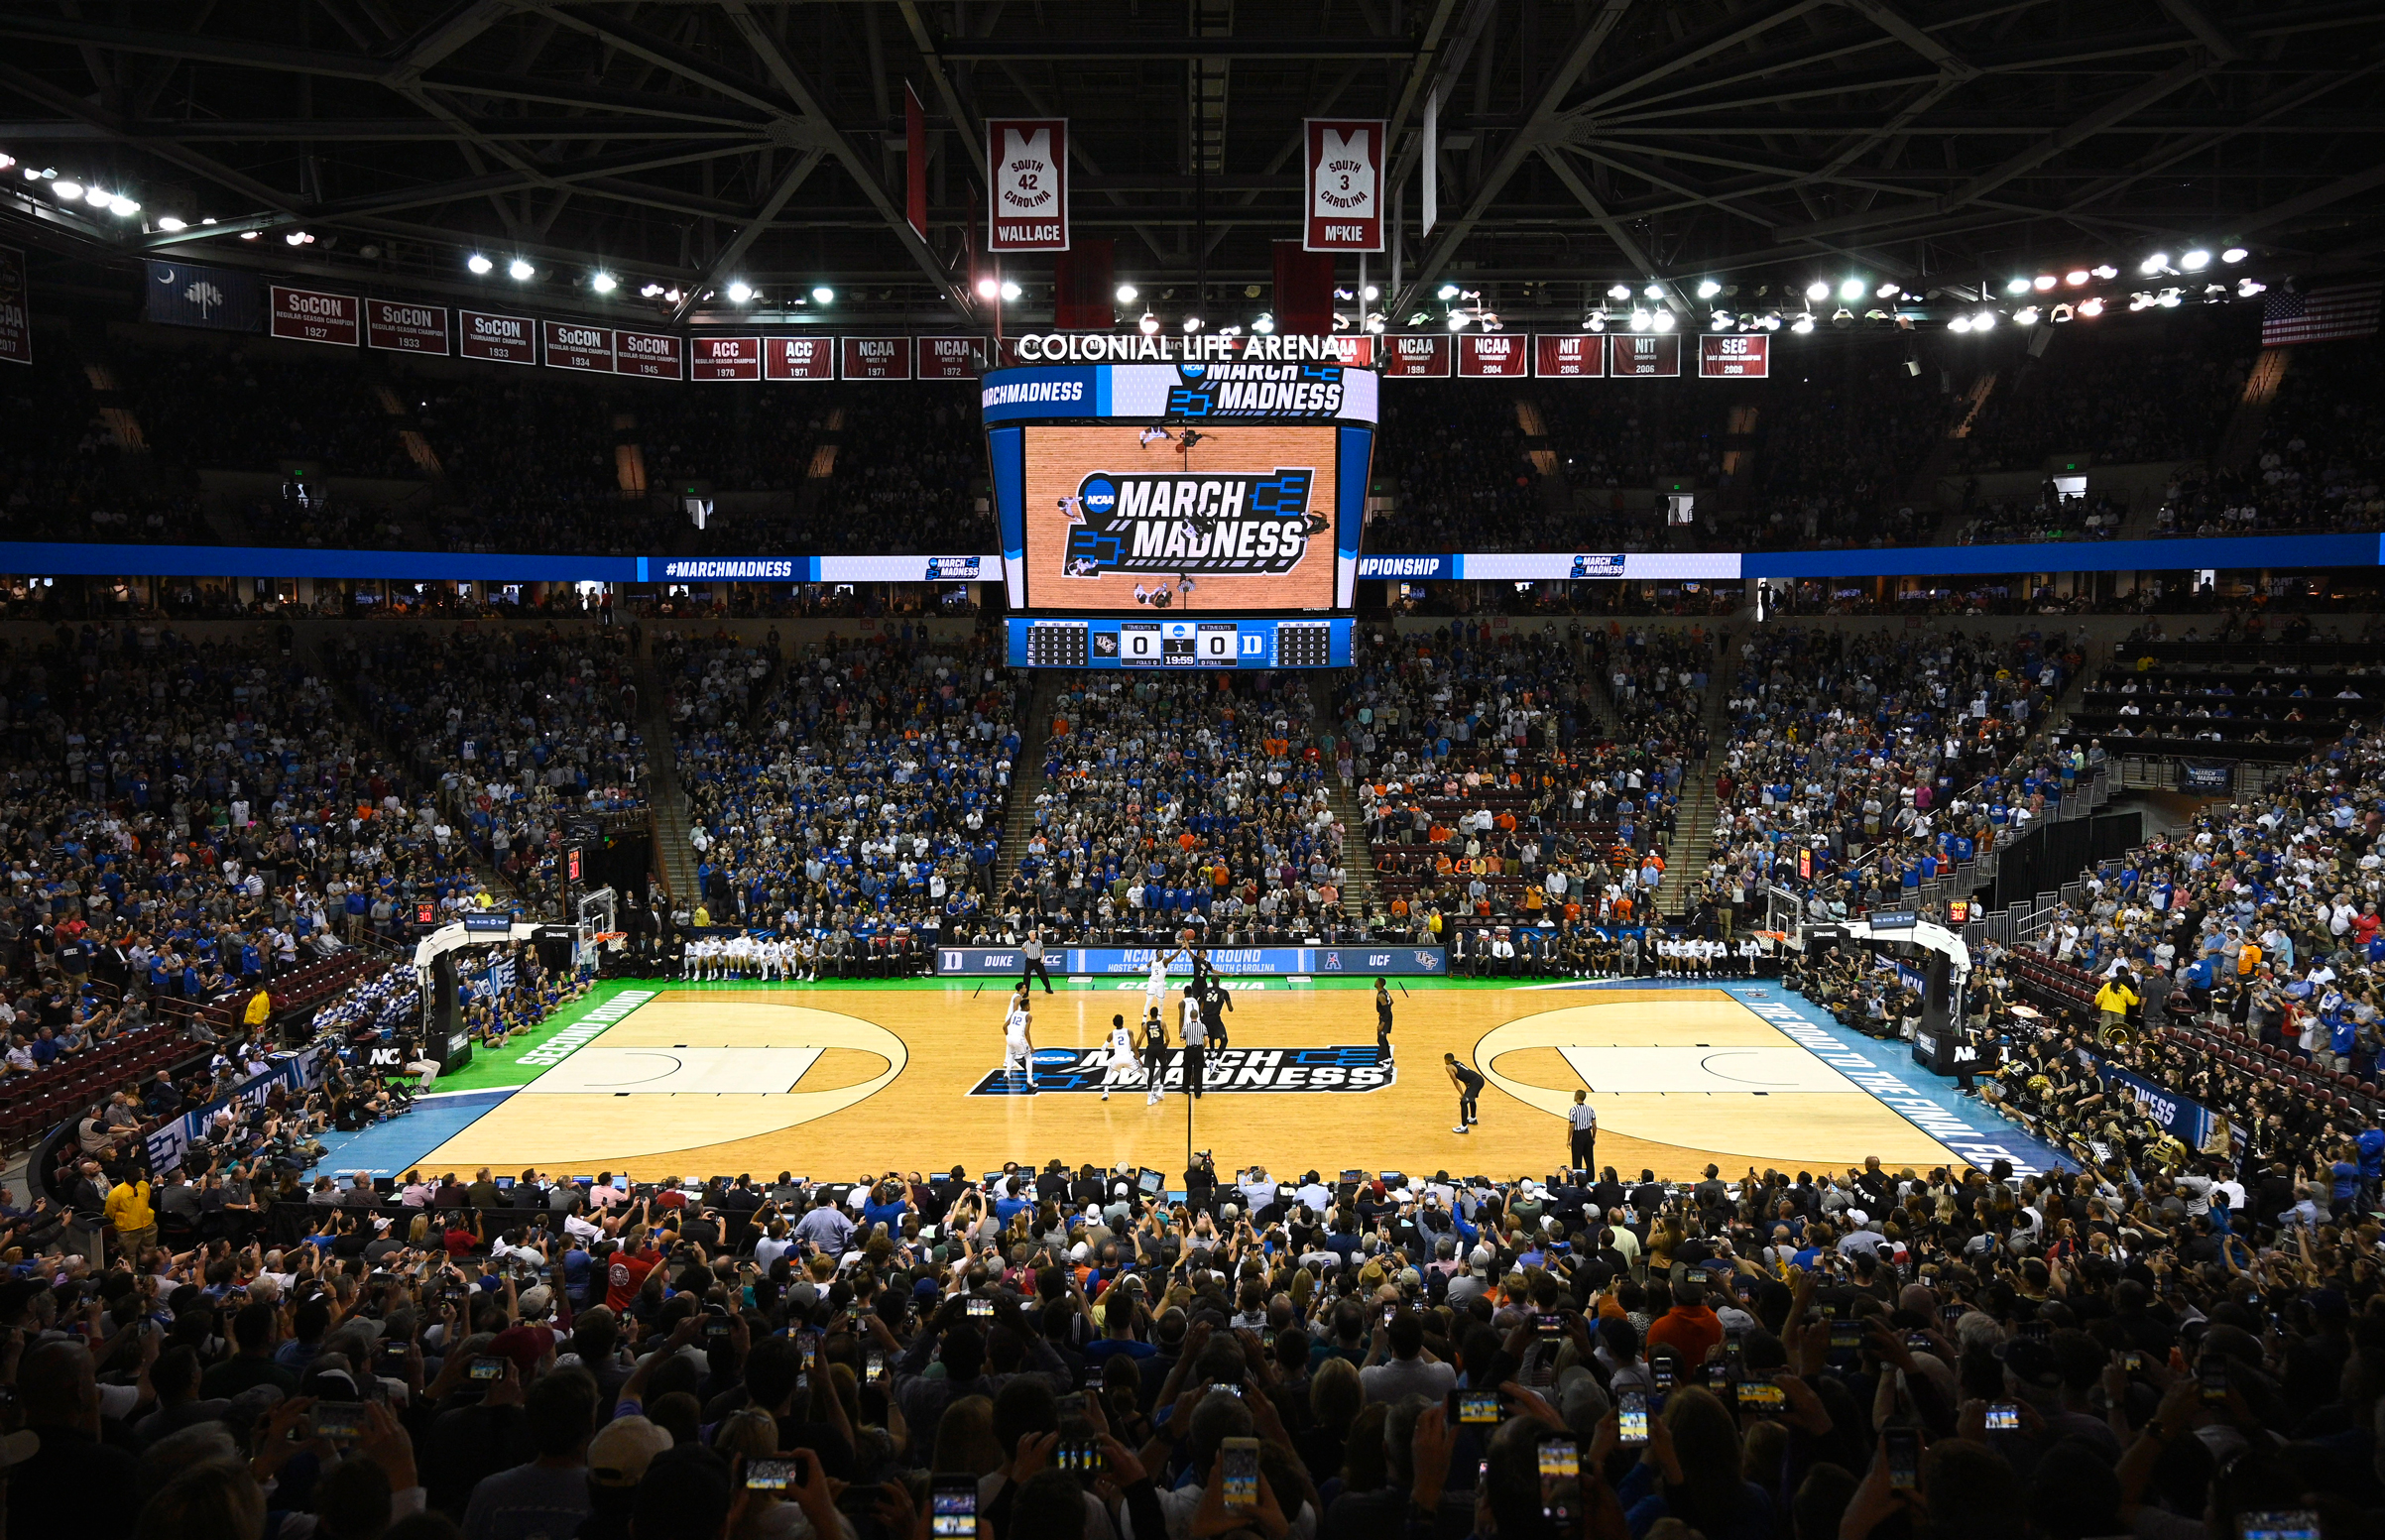 The game between the Duke Blue Devils and the University of Central Florida Knights tips off in the second round of the 2019 NCAA Men's Basketball Tournament on March 24, 2019 in Columbia, South Carolina.